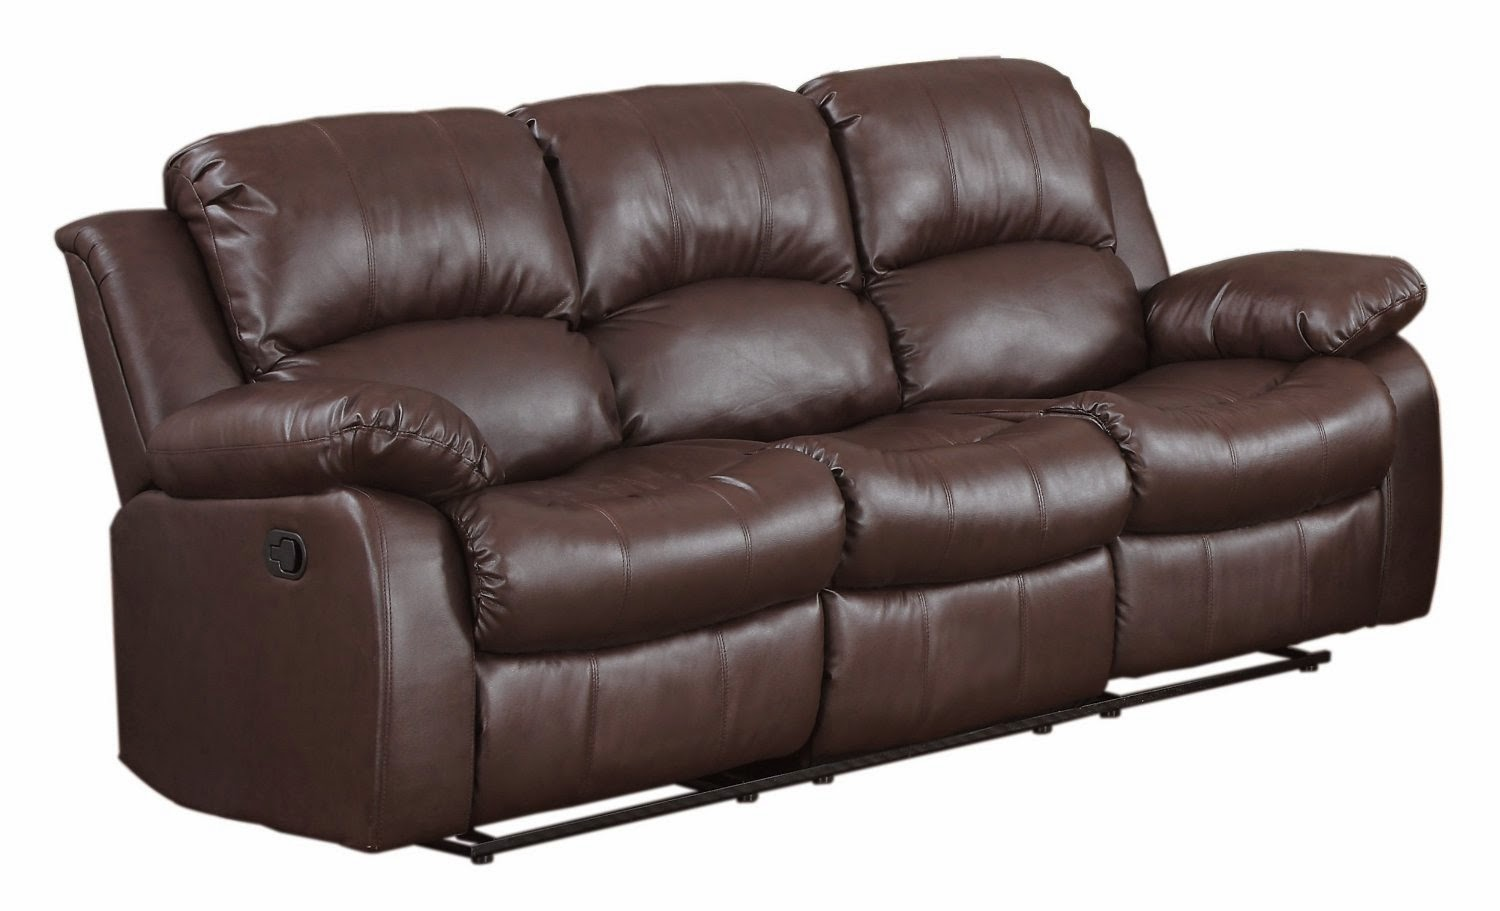 4 Person Reclining Sofa Flat Pack Australia Cheap Recliner Sofas For Sale Sectional